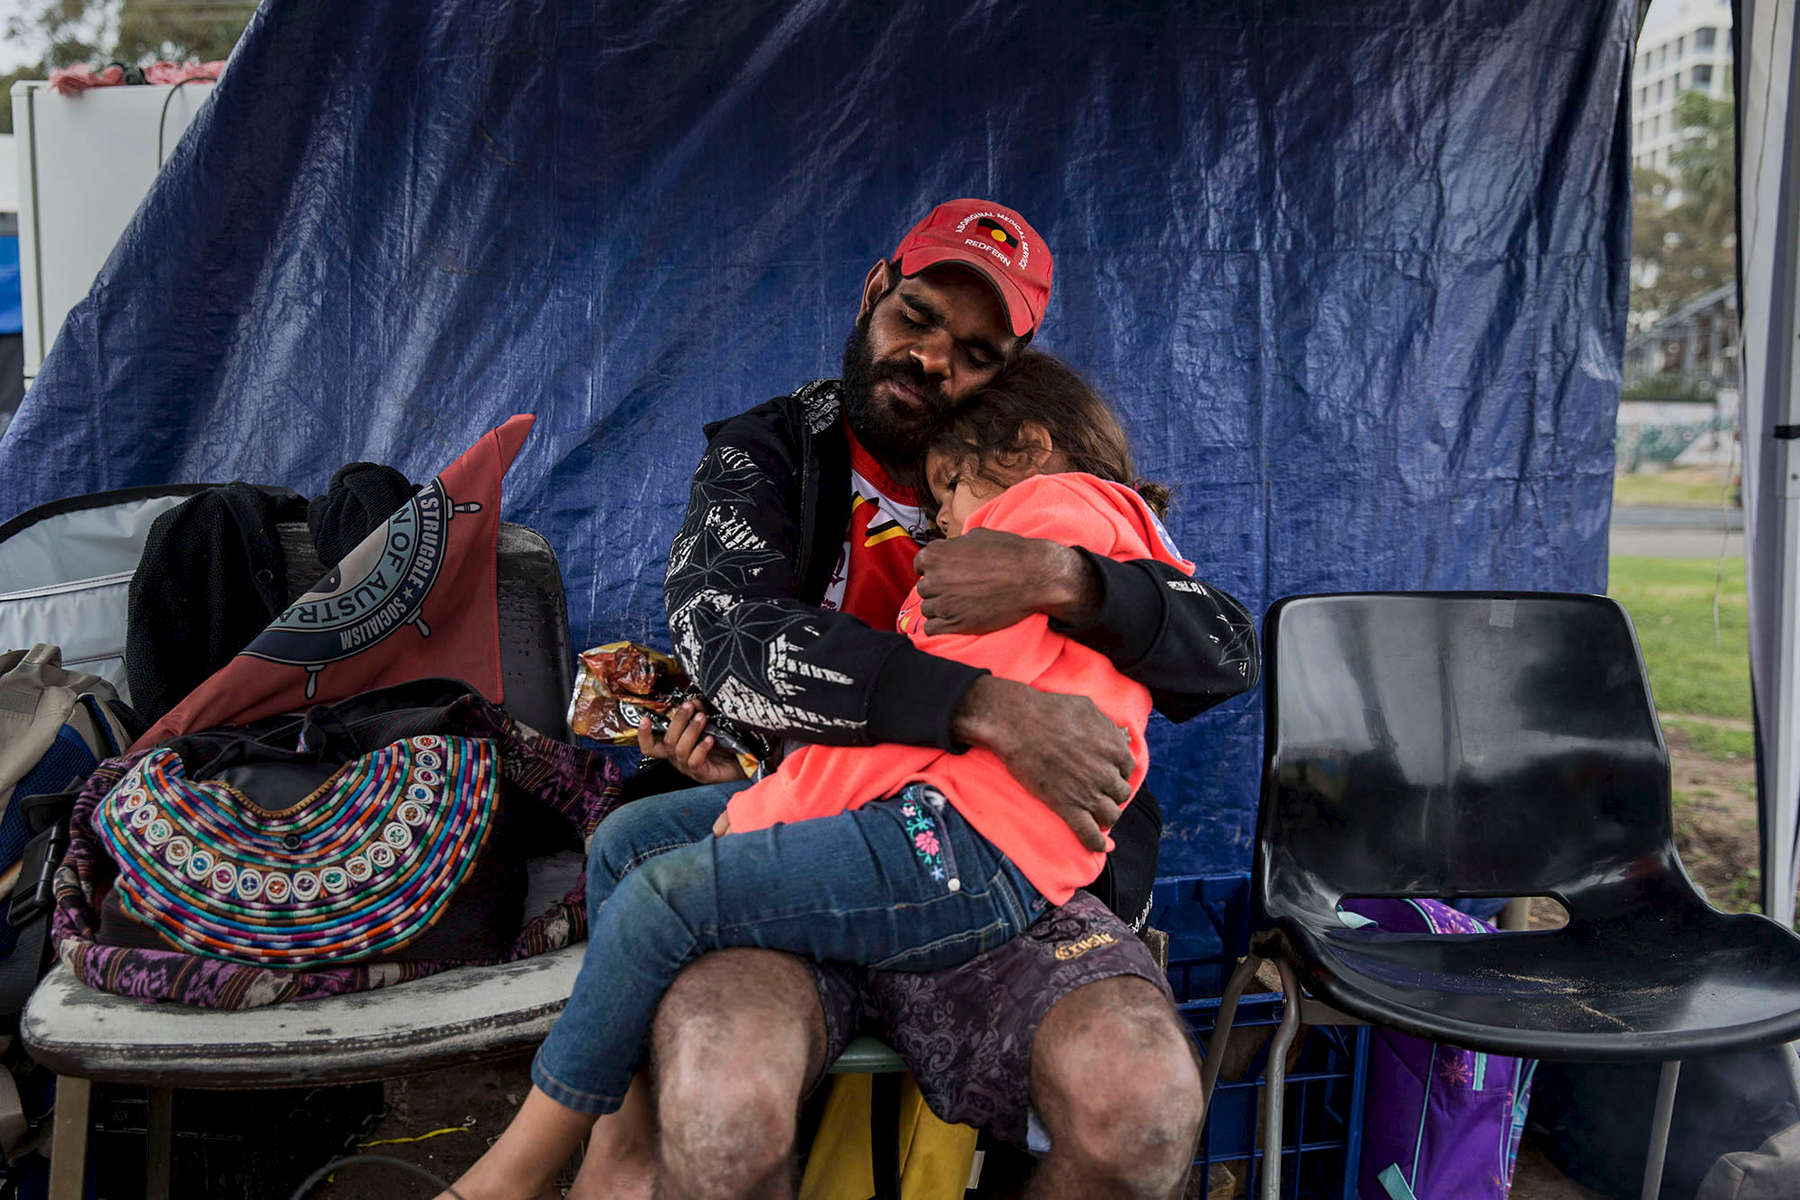 Stedman hold his daughter at the Redfern Aboriginal Tent Emabassy protest site in Sydney.